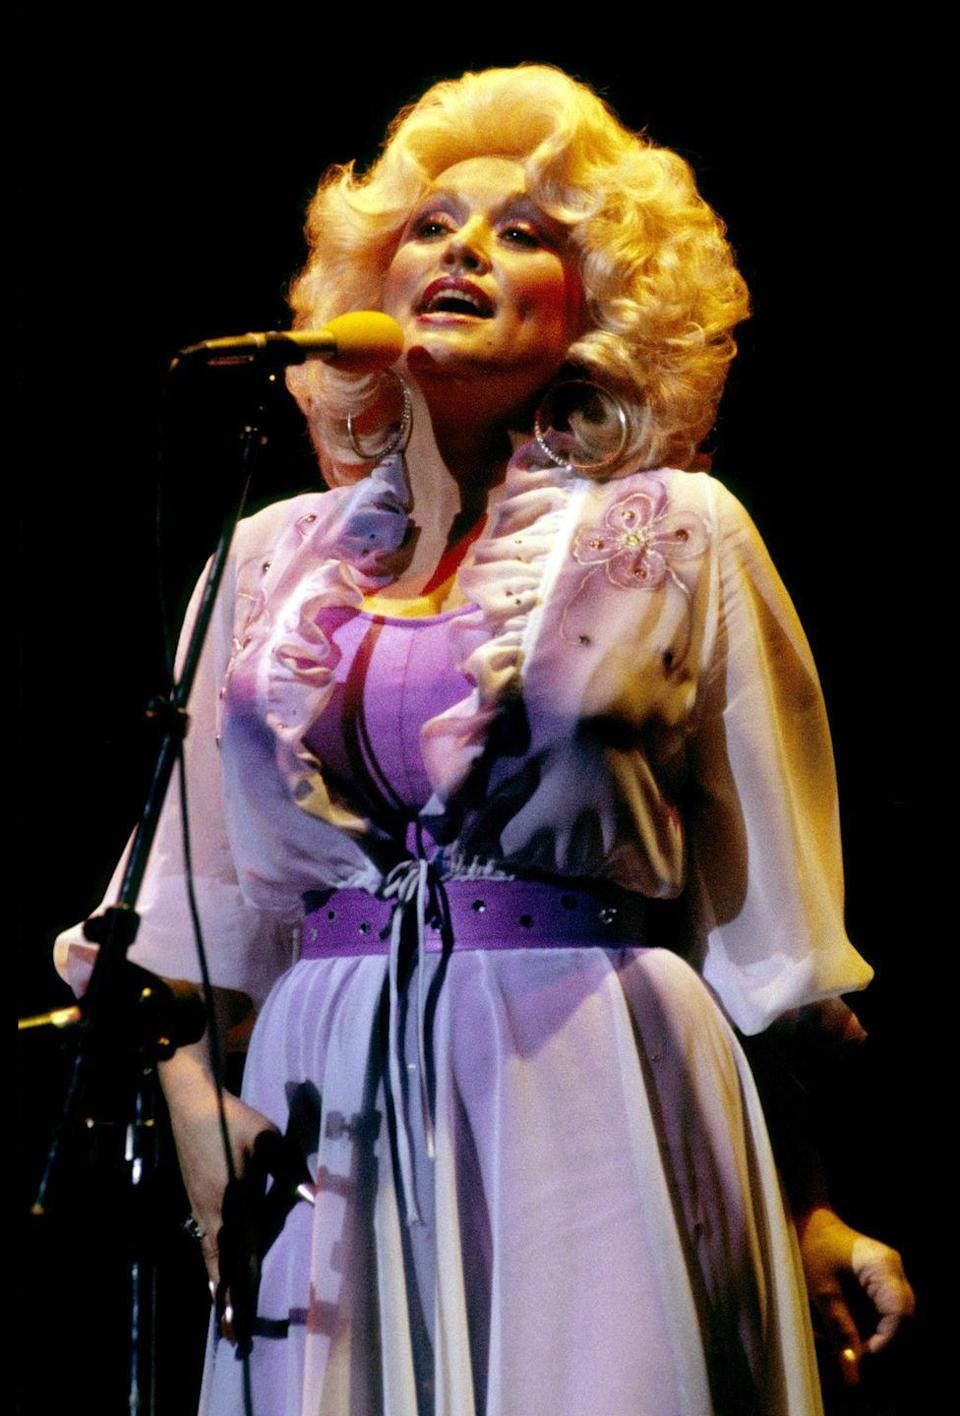 <p>Early on in Dolly's career, the singer stuck mostly to pastels—unlike the vibrant colors we're used to seeing on her today. This breezy ensemble feels reminiscent of a simpler life back home in Tennessee, elevated with a bright purple belt and delicate beading.</p>